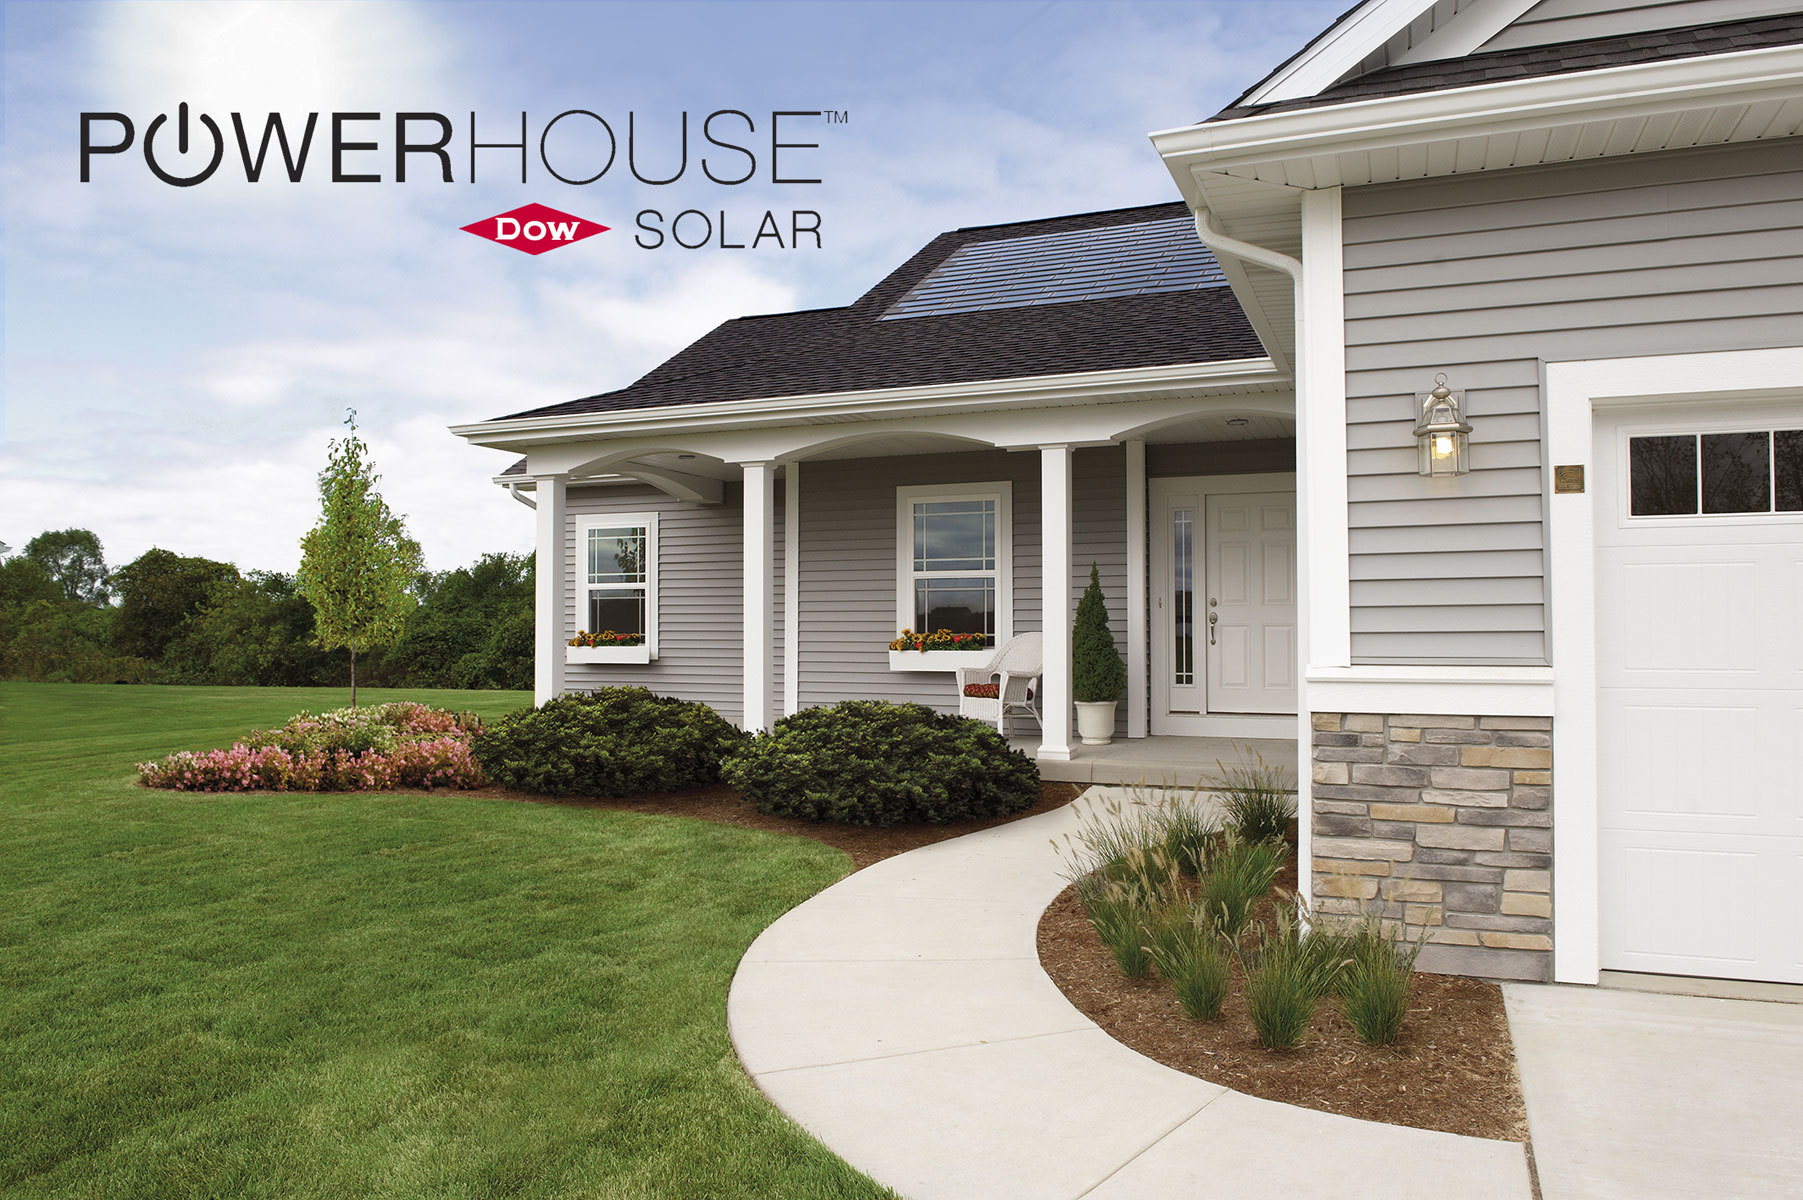 Dow produced BIPV 'solar shingles' at the former automotive parts plant, used primarily on new-build residential homes in a number of regions in the US. The product was not made available outside the US.